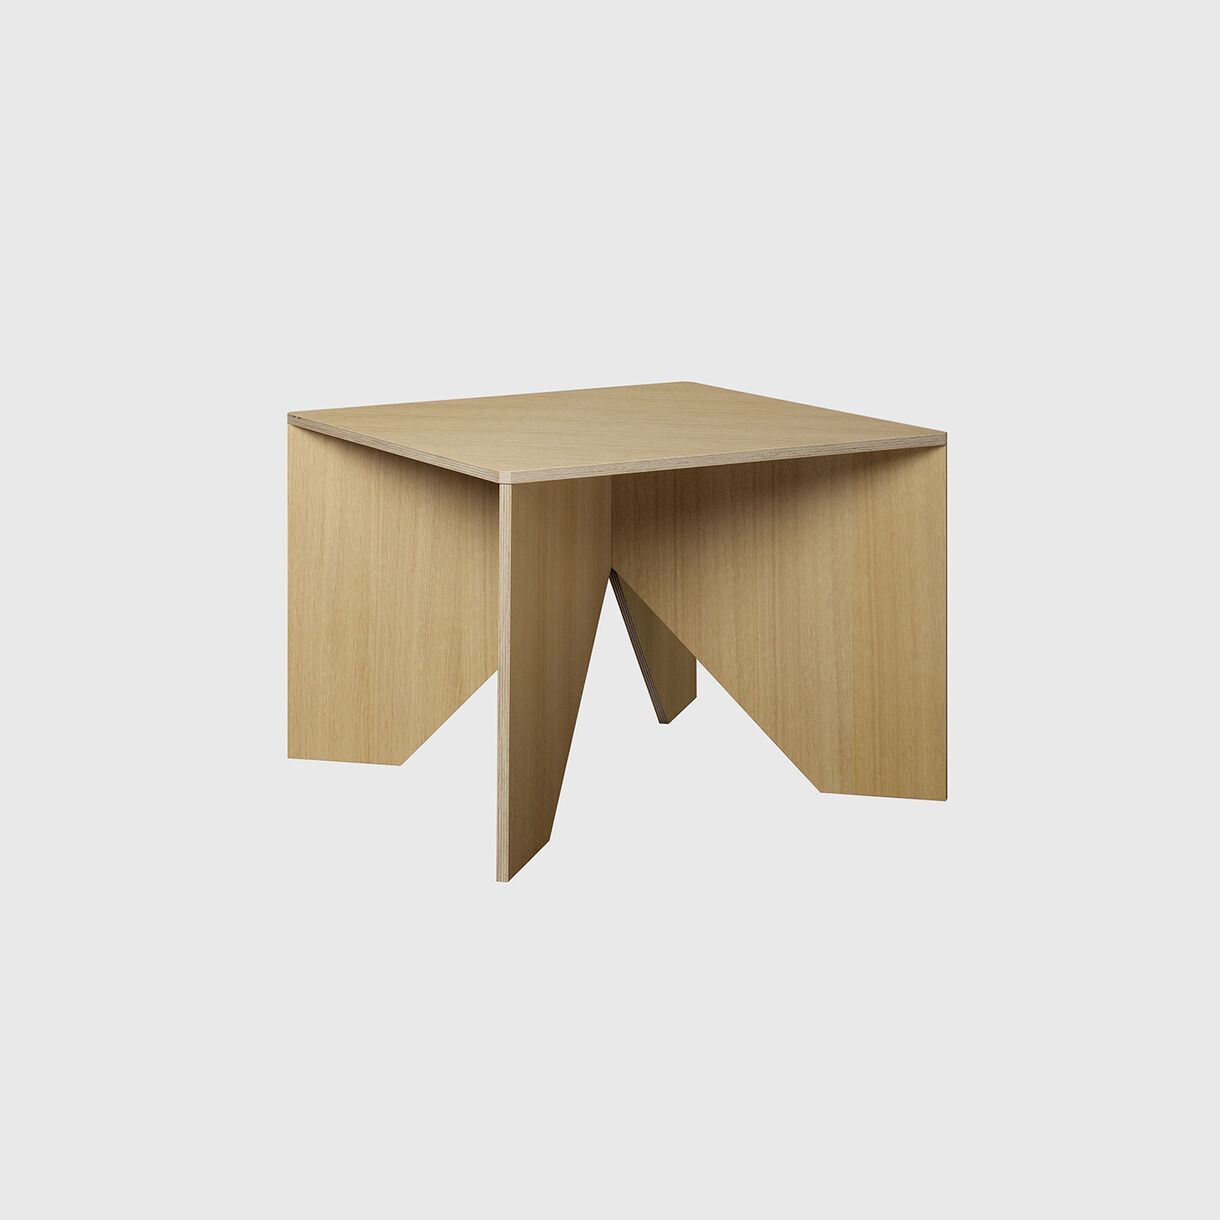 Calvert Coffee Table, Oak